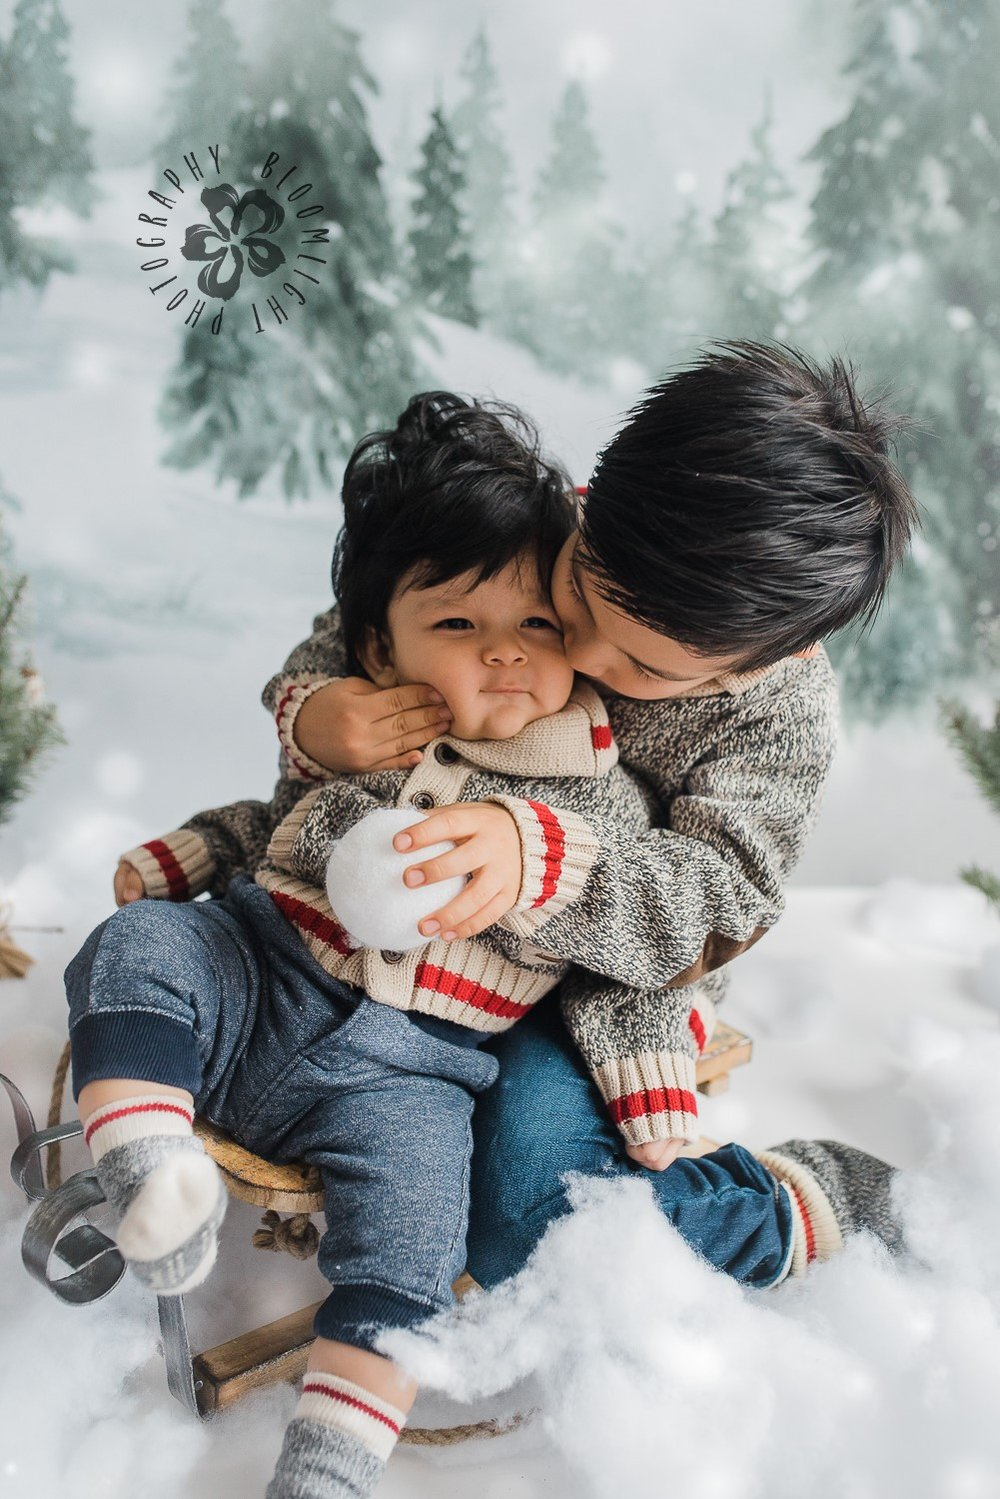 Big brother kissing his little brother in Holiday mini session